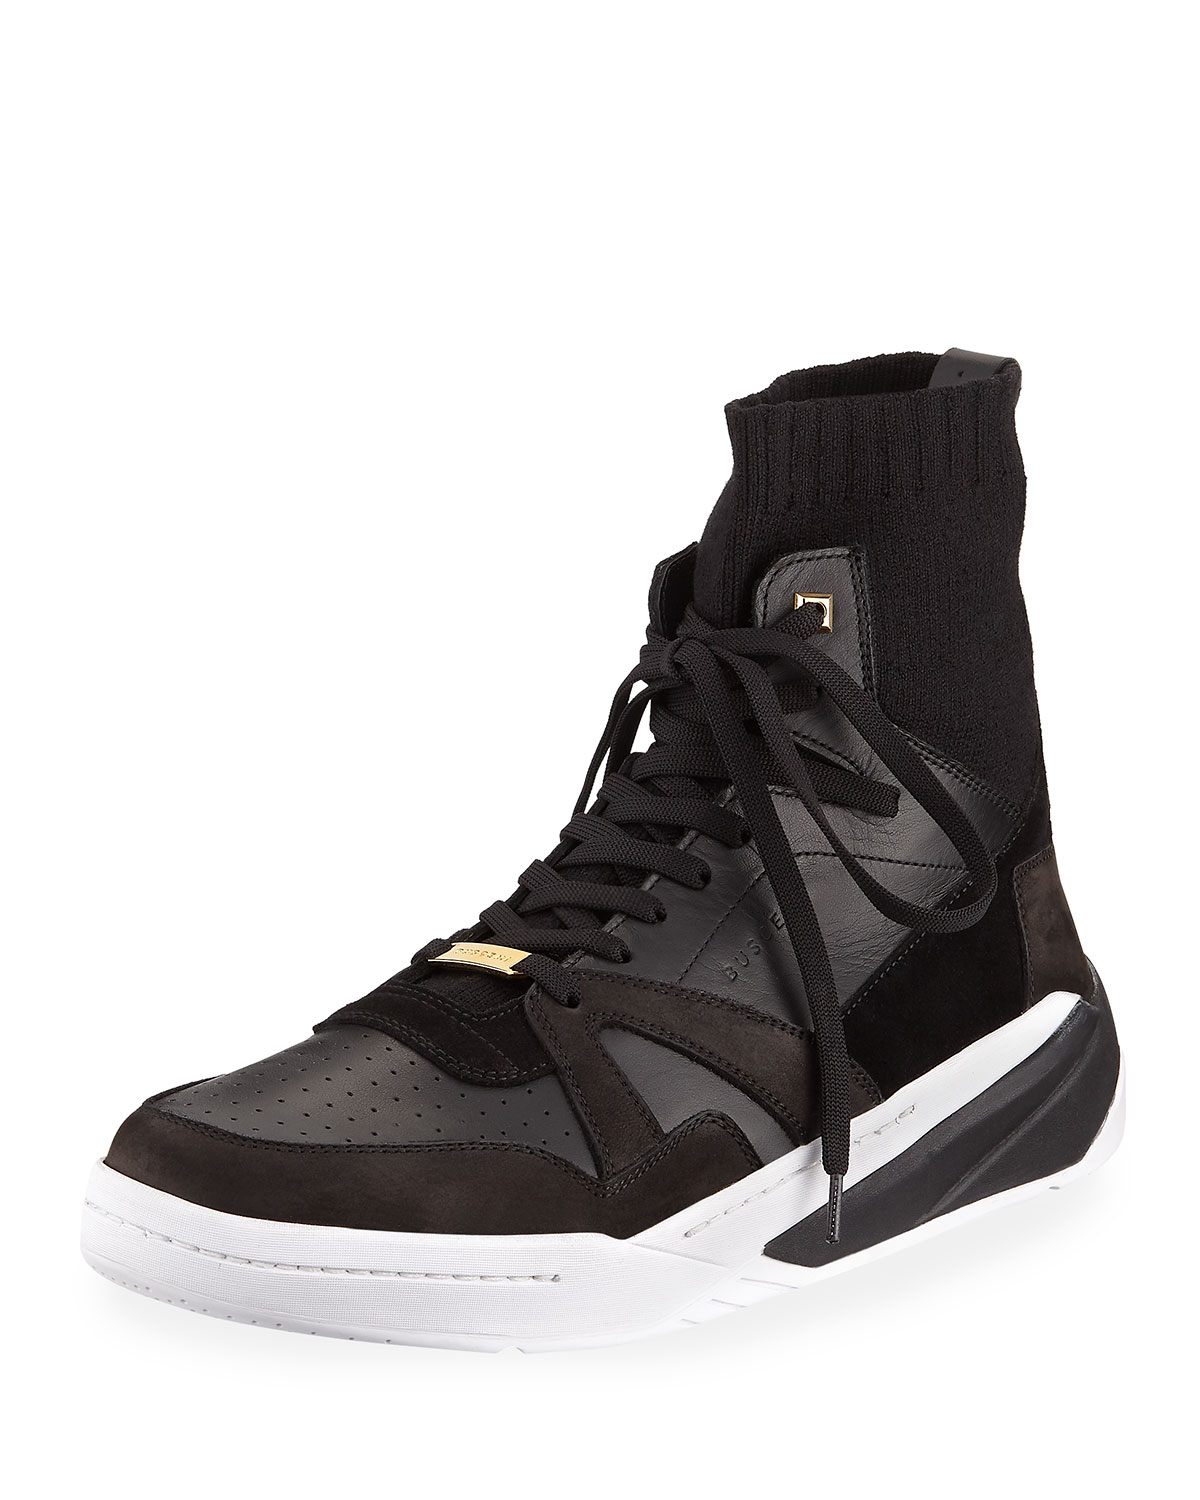 7875a039a Buscemi Men's 150mm Leather High-Top Sock Sneakers | Neiman Marcus